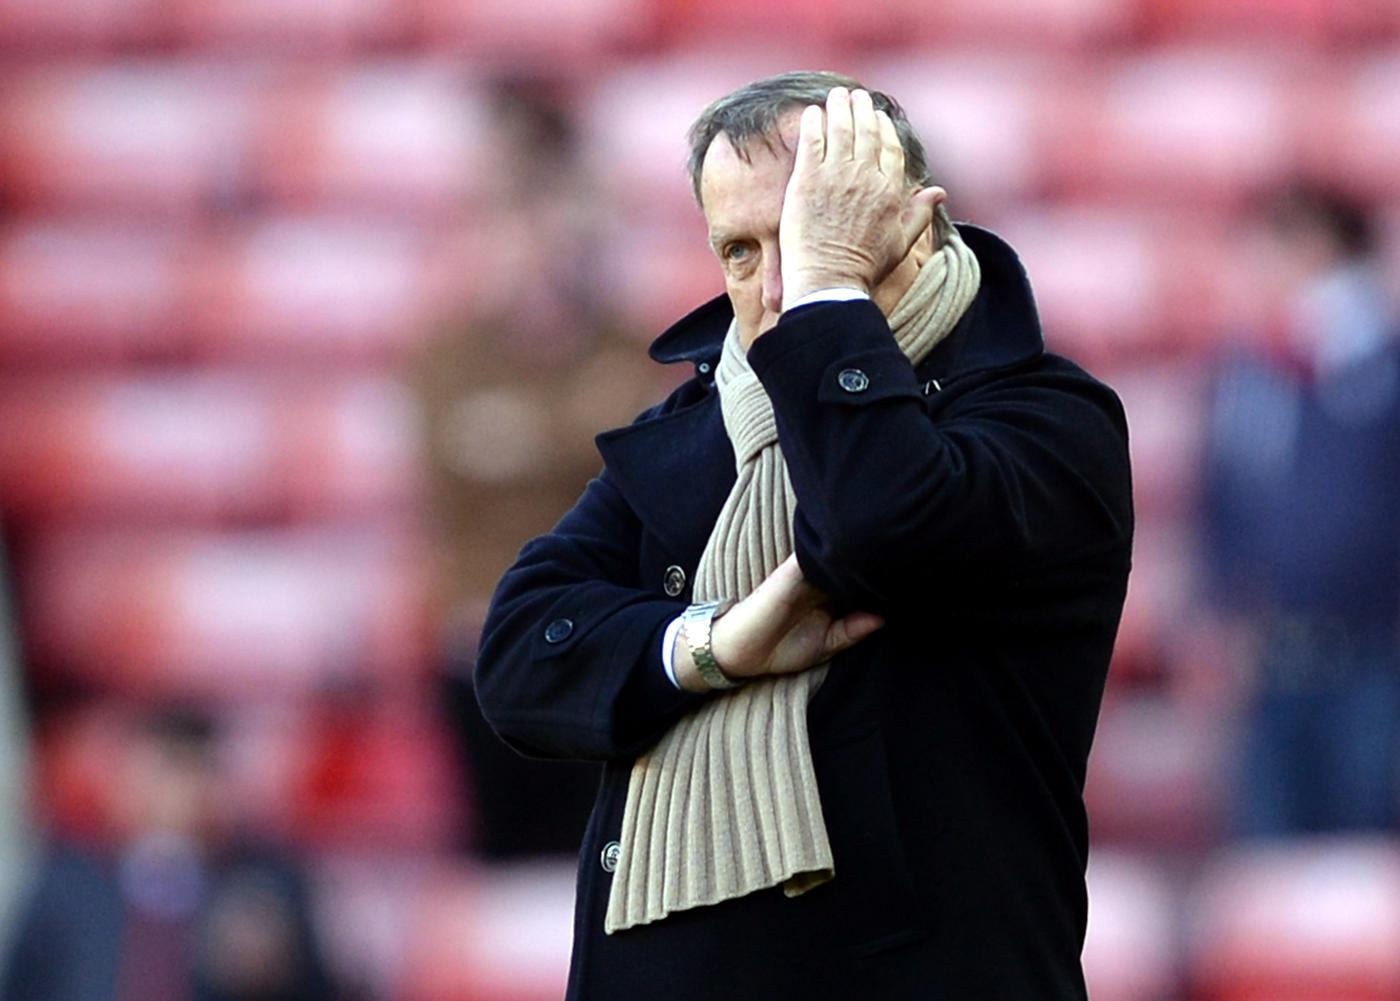 Can Sunderland get enough points to avoid relegation from the Premier League?